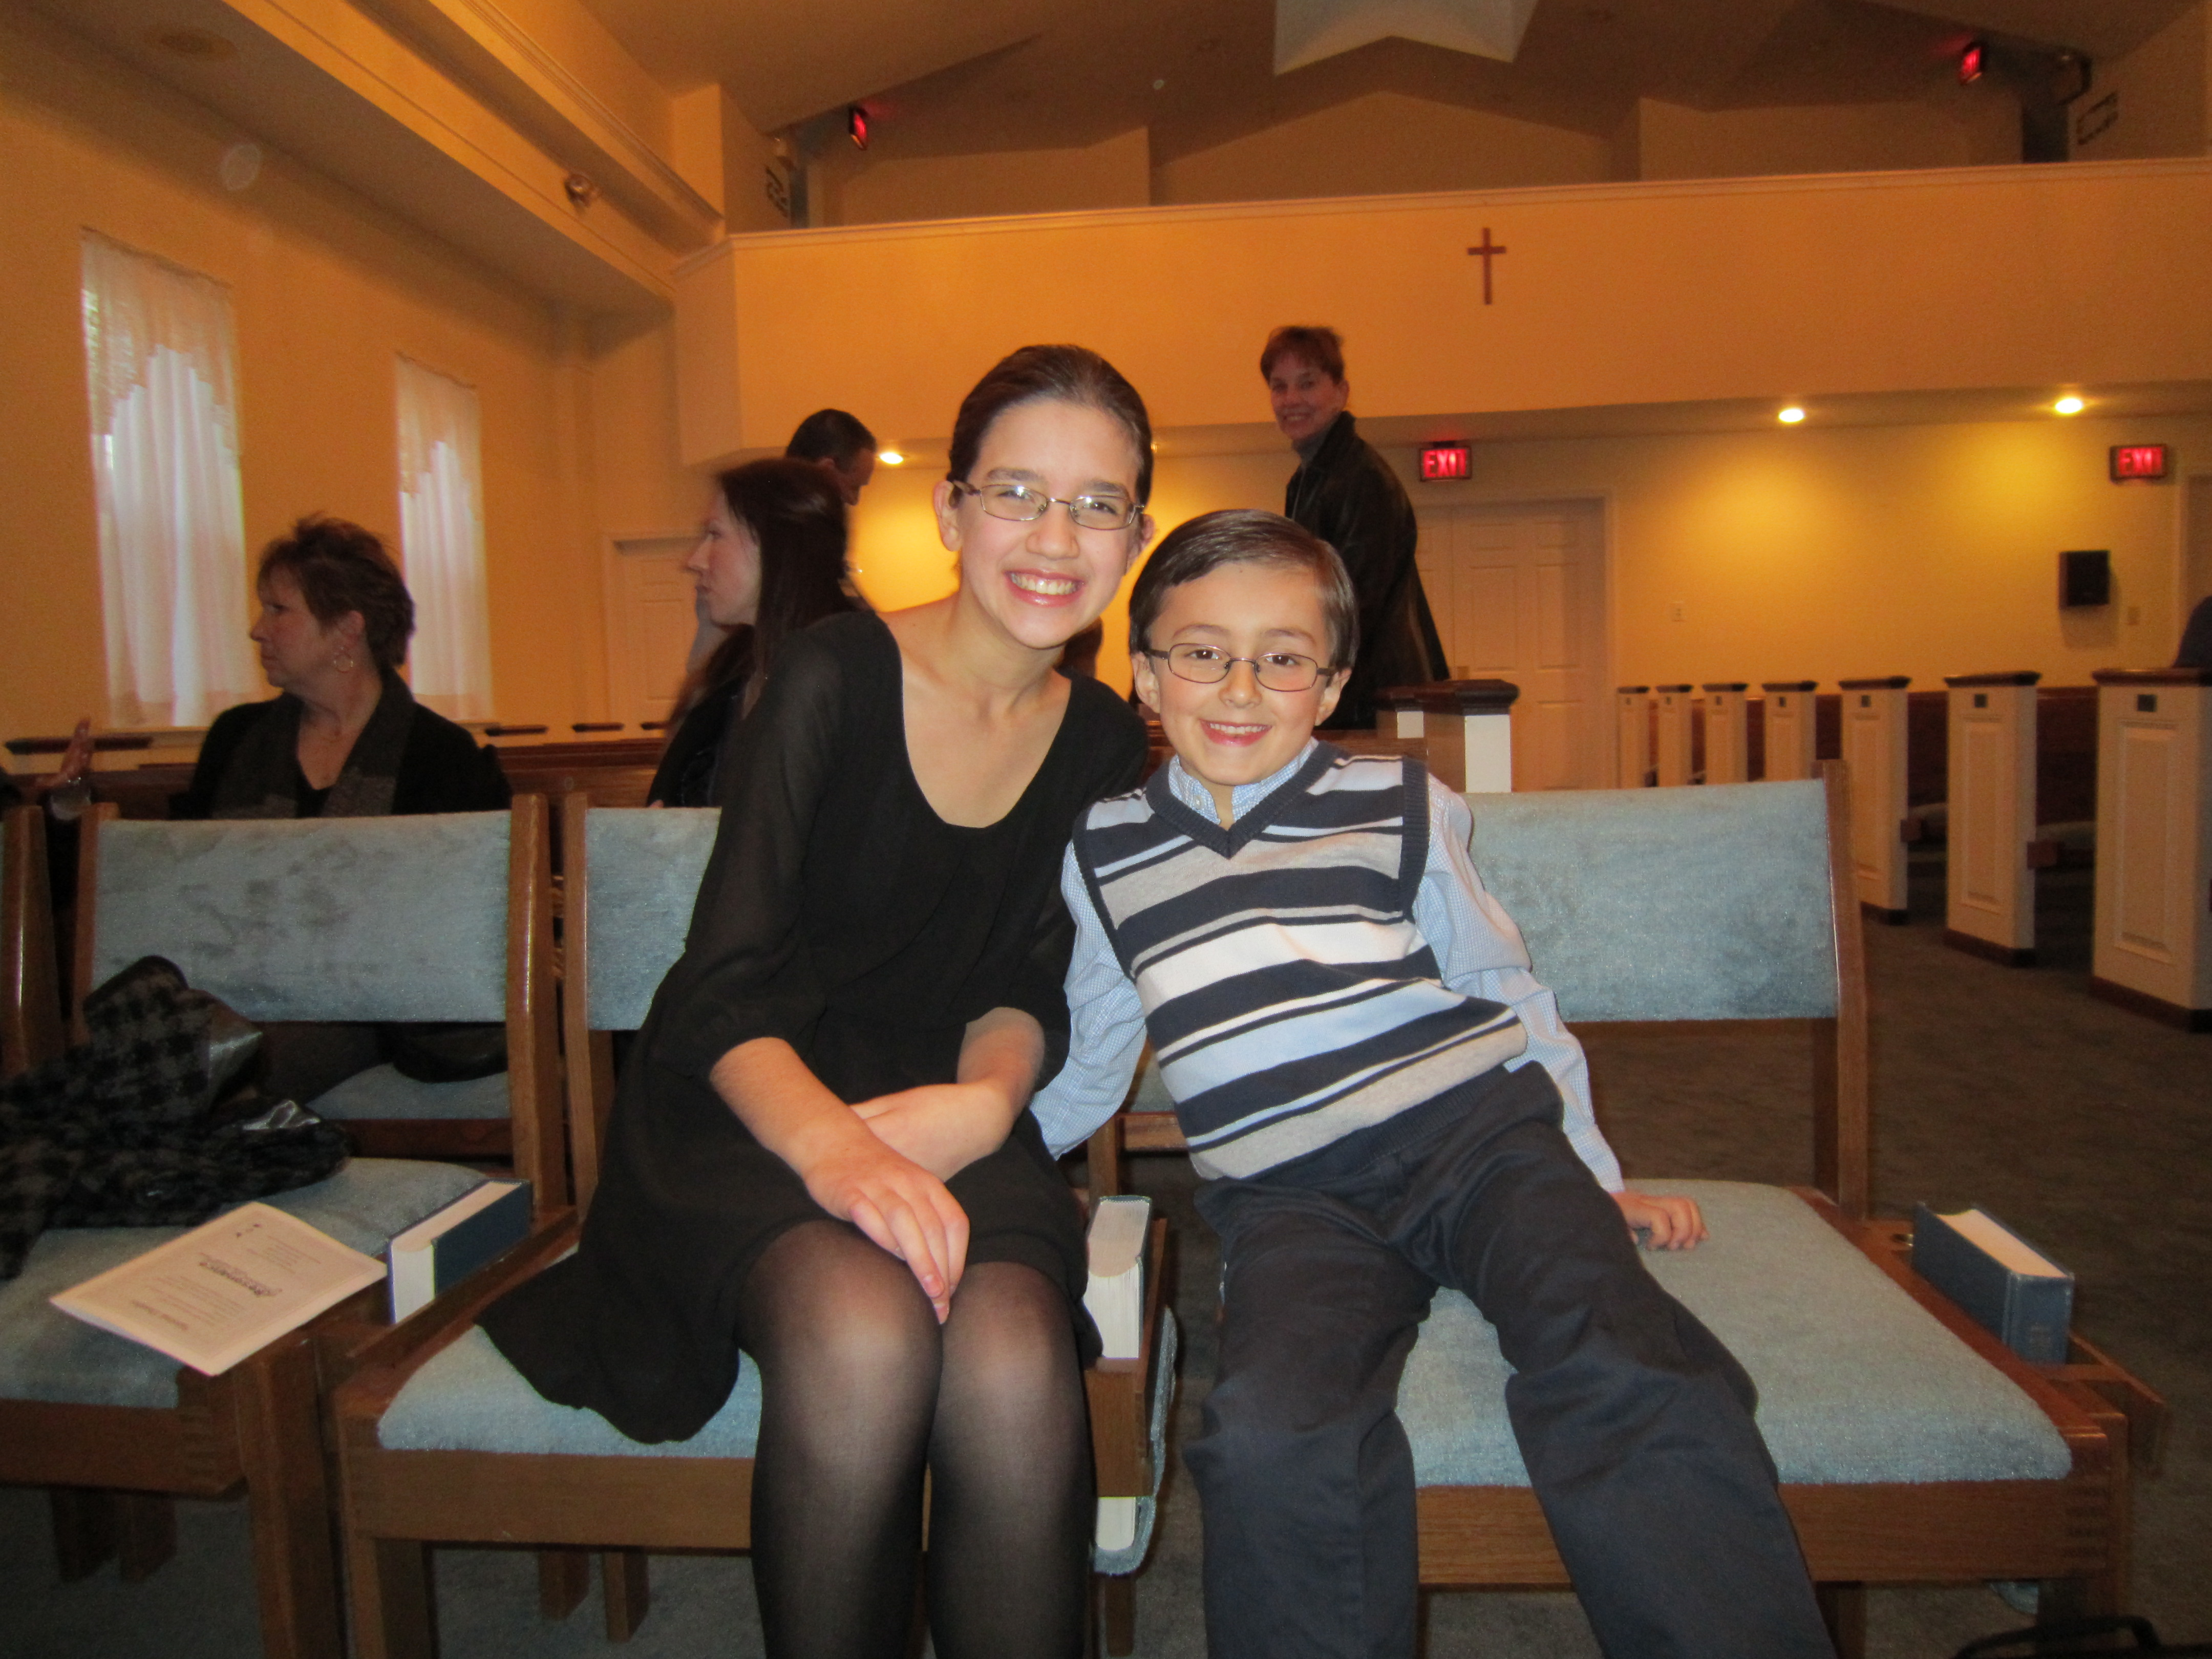 Piano students Sophie A. and Christian M. during the 5pm recitals!